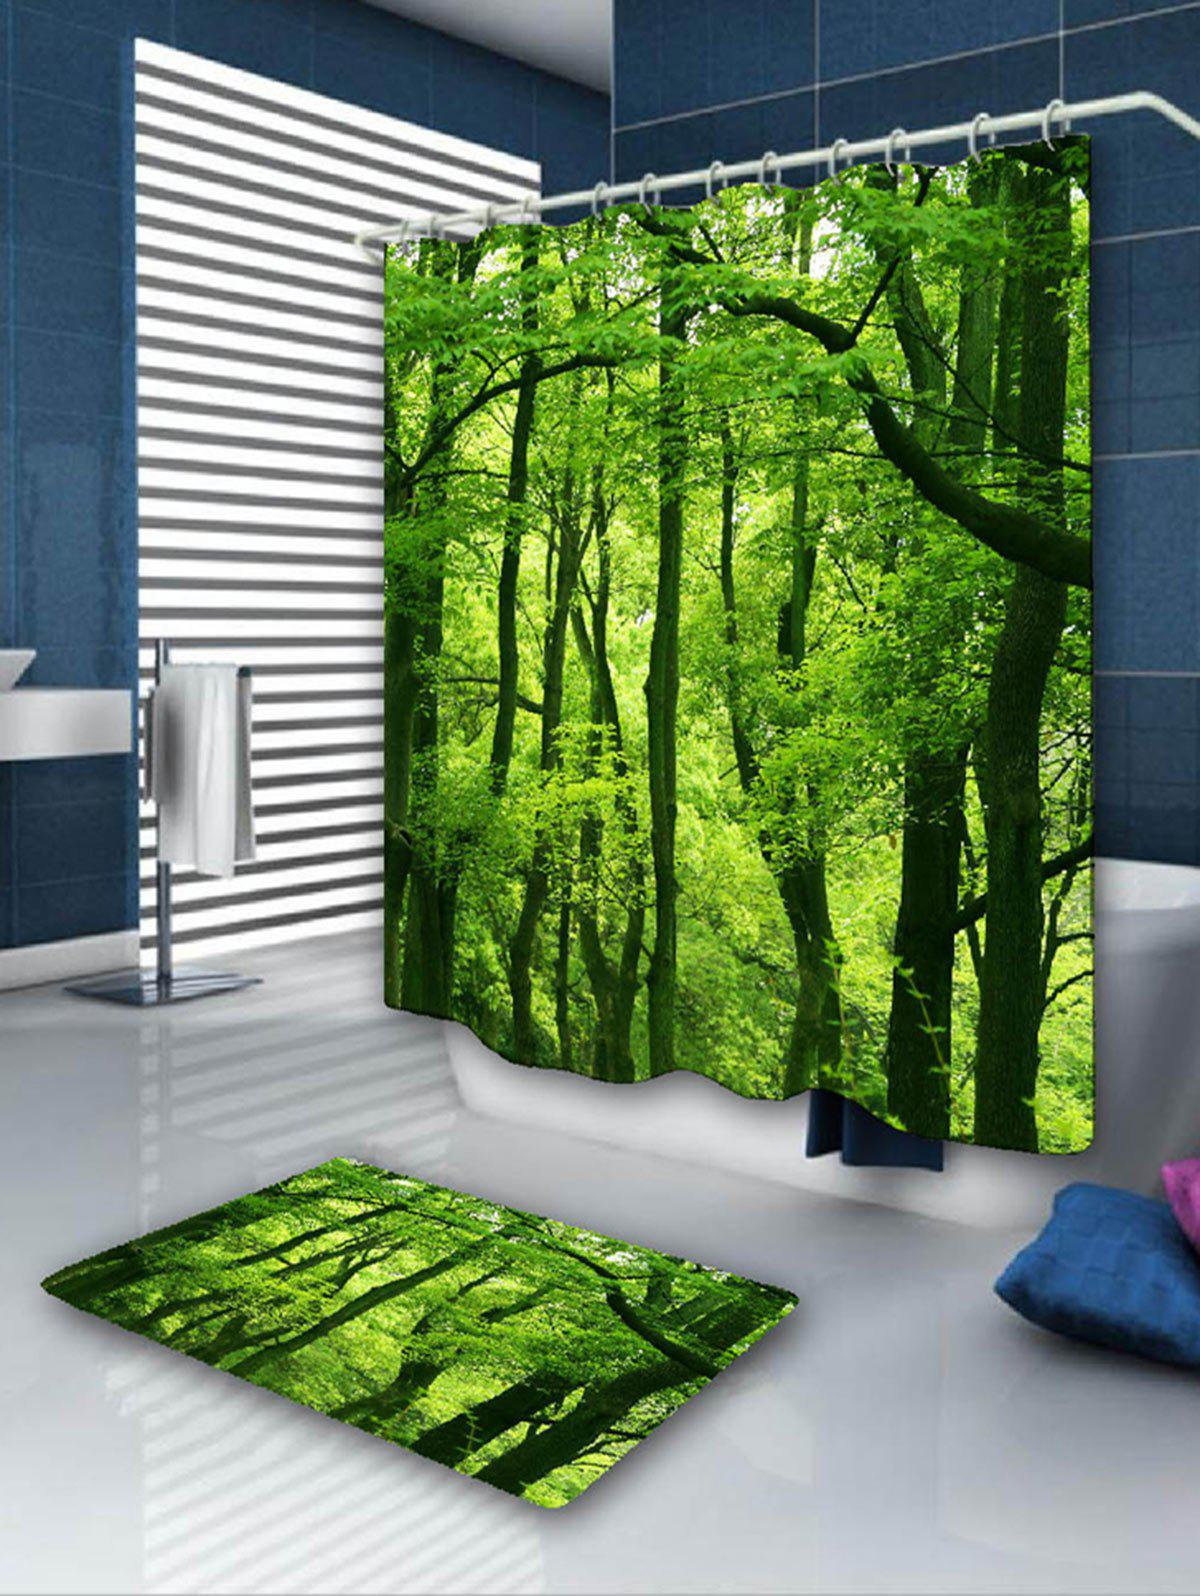 Forest Pattern Shower Curtain and Area Rug flowers butterflies pattern waterproof shower curtain